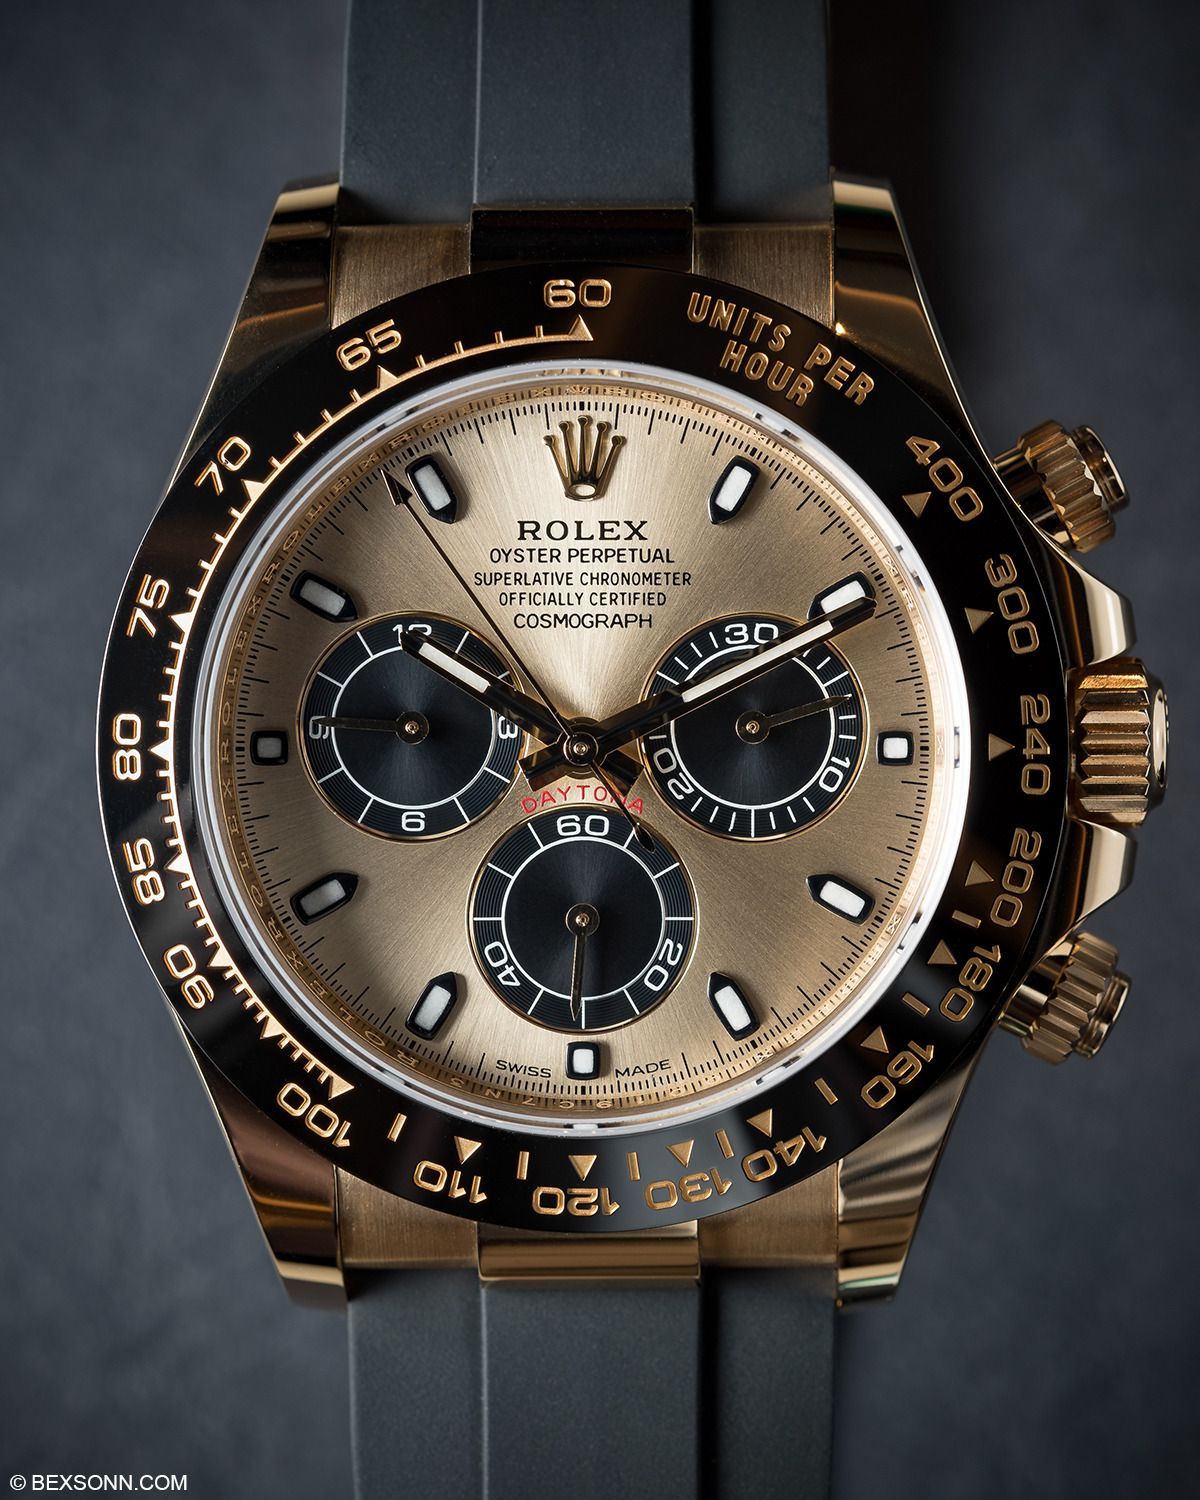 Rolex Cosmograph Daytona Read More Luxury Watches For Men Rolex Watches Best Looking Watches